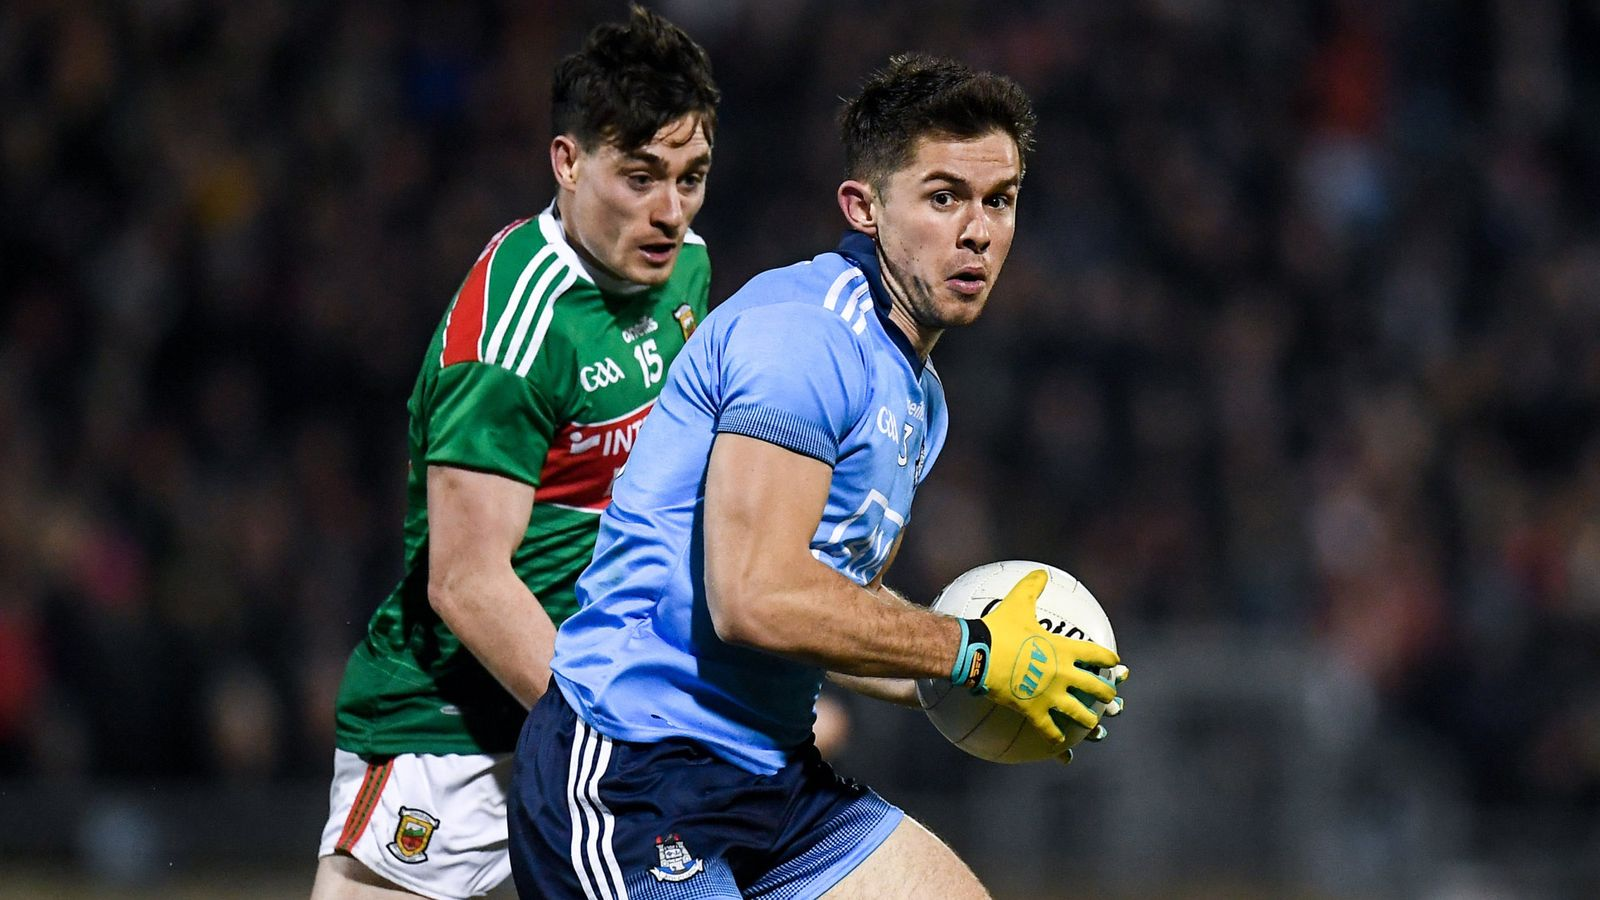 National League : Dublin and Kerry overcome Connacht opposition